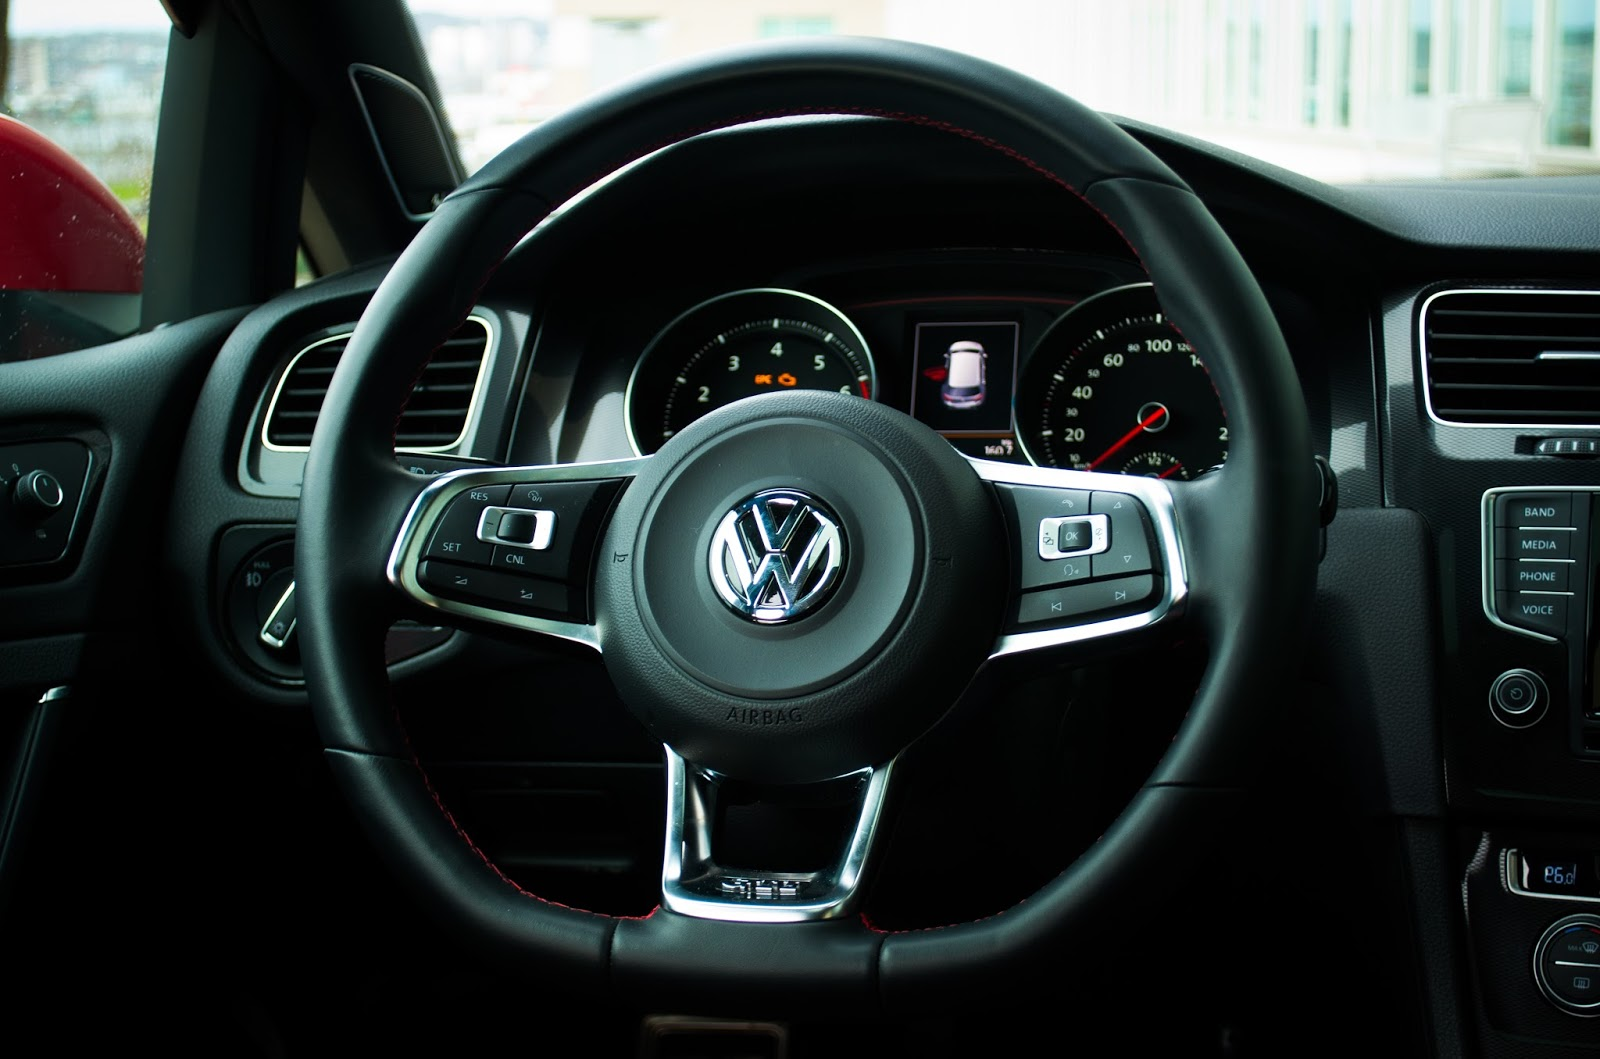 2015 Volkswagen Golf GTI steering wheel